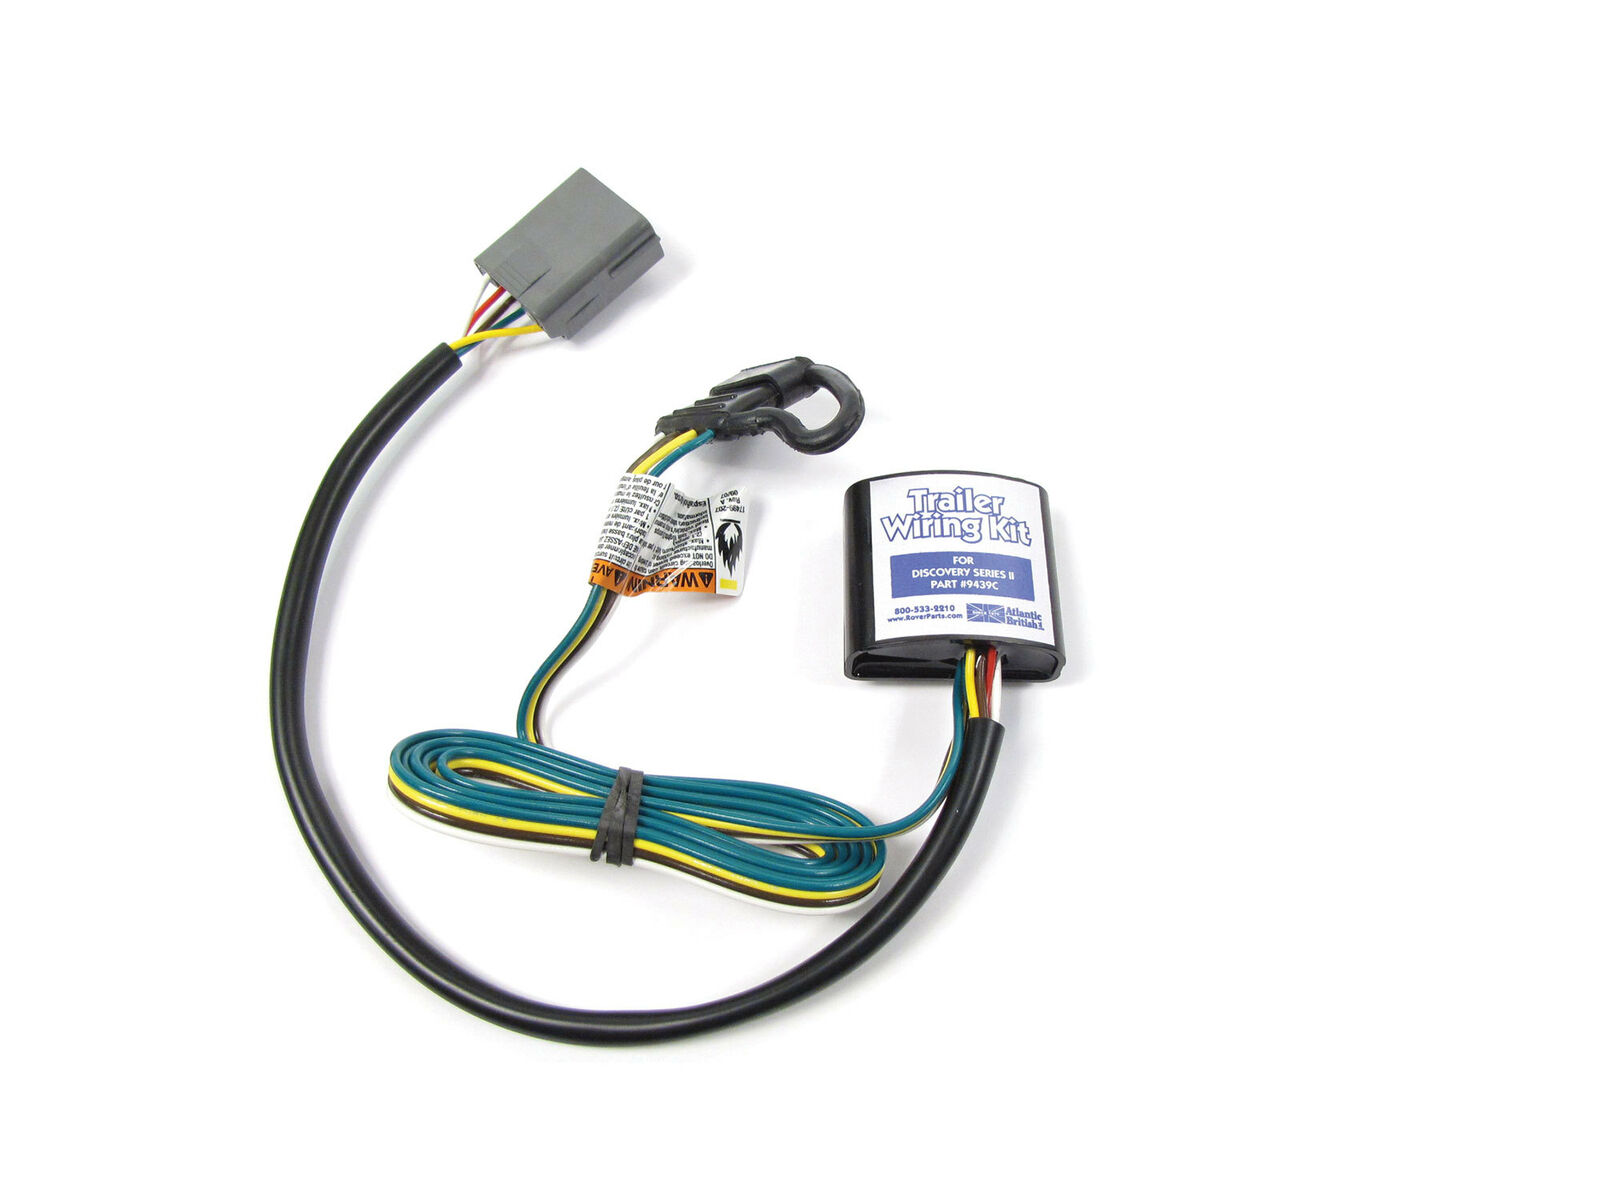 Atlantic British Land Rover Ywj500120 Trailer Wiring Kit For The Jeep Liberty Discovery 2 1 Of 2free Shipping See More